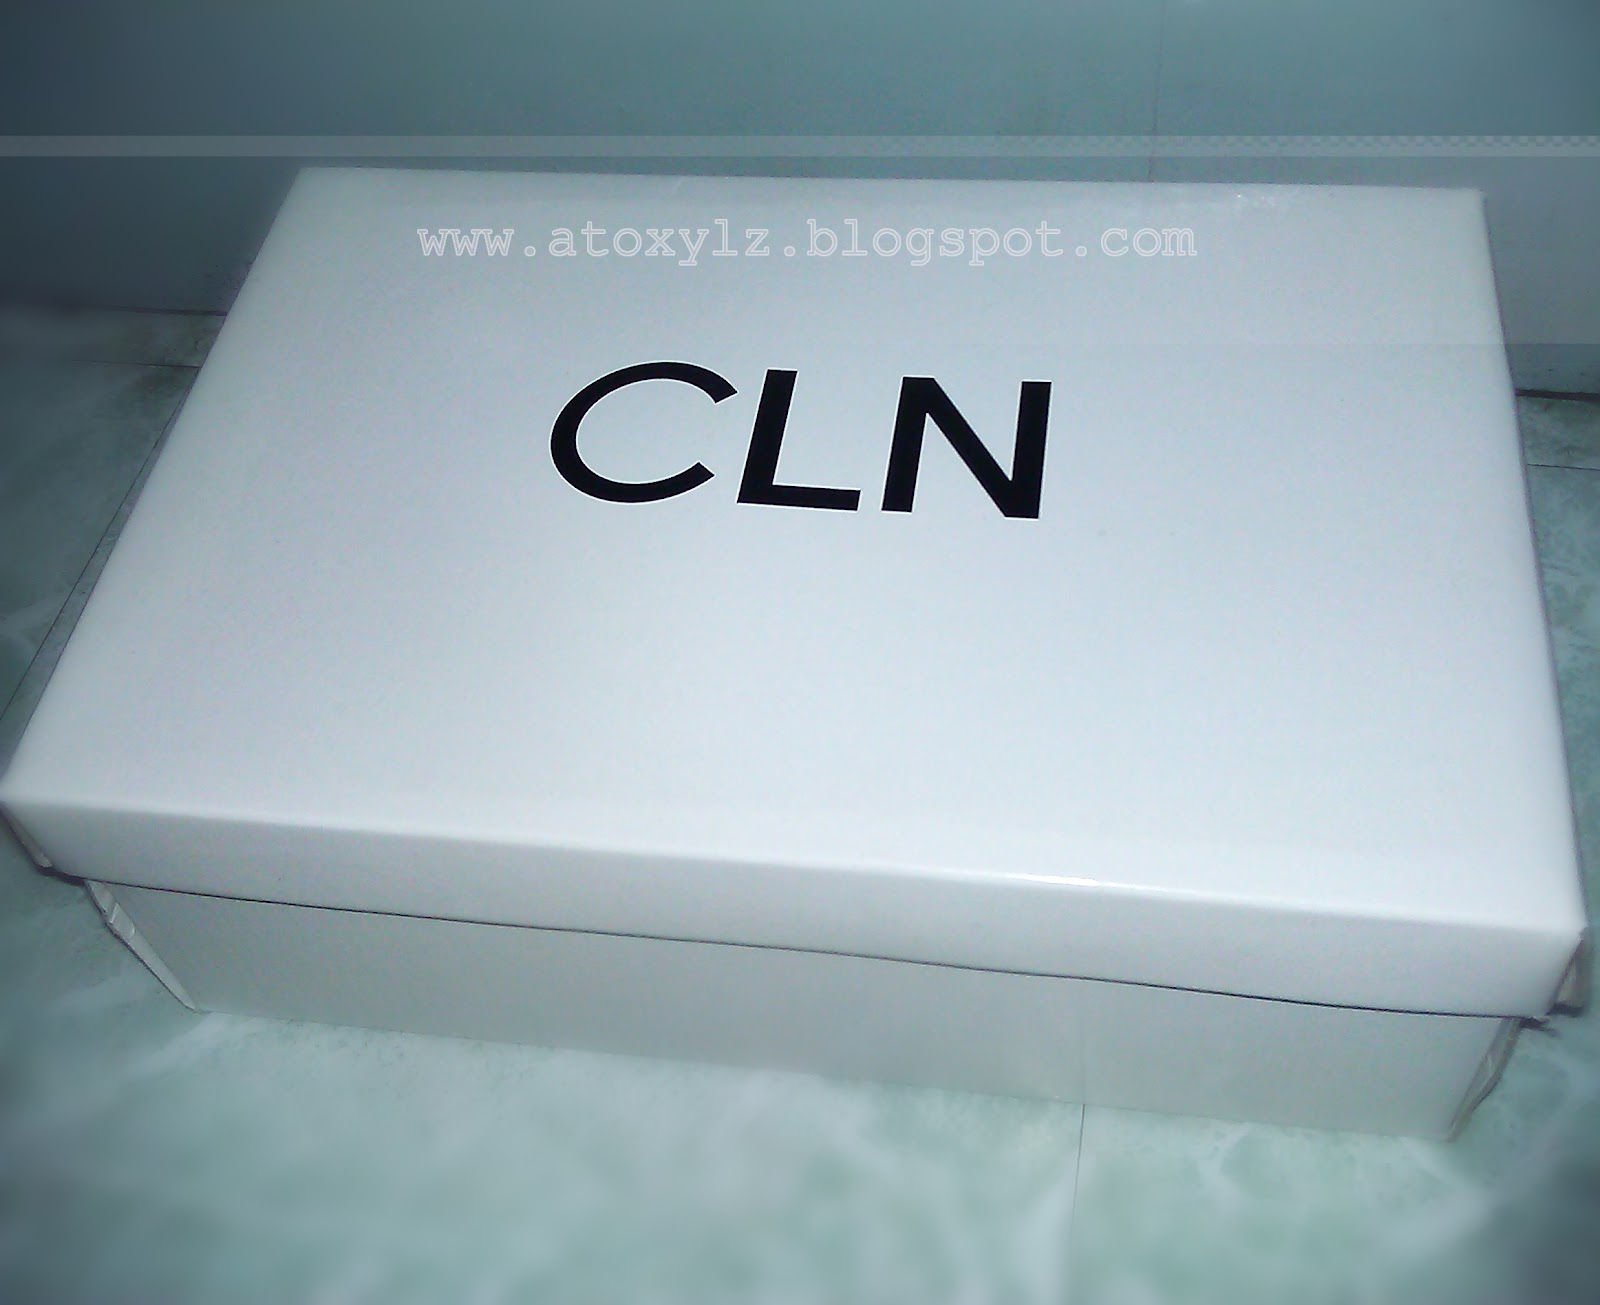 Cln shoes sandals philippines - I Would Say They Are Average Priced Shoes But Certainly Worth It They Last And Won T Go Out Of Style Here S What I Have Picked